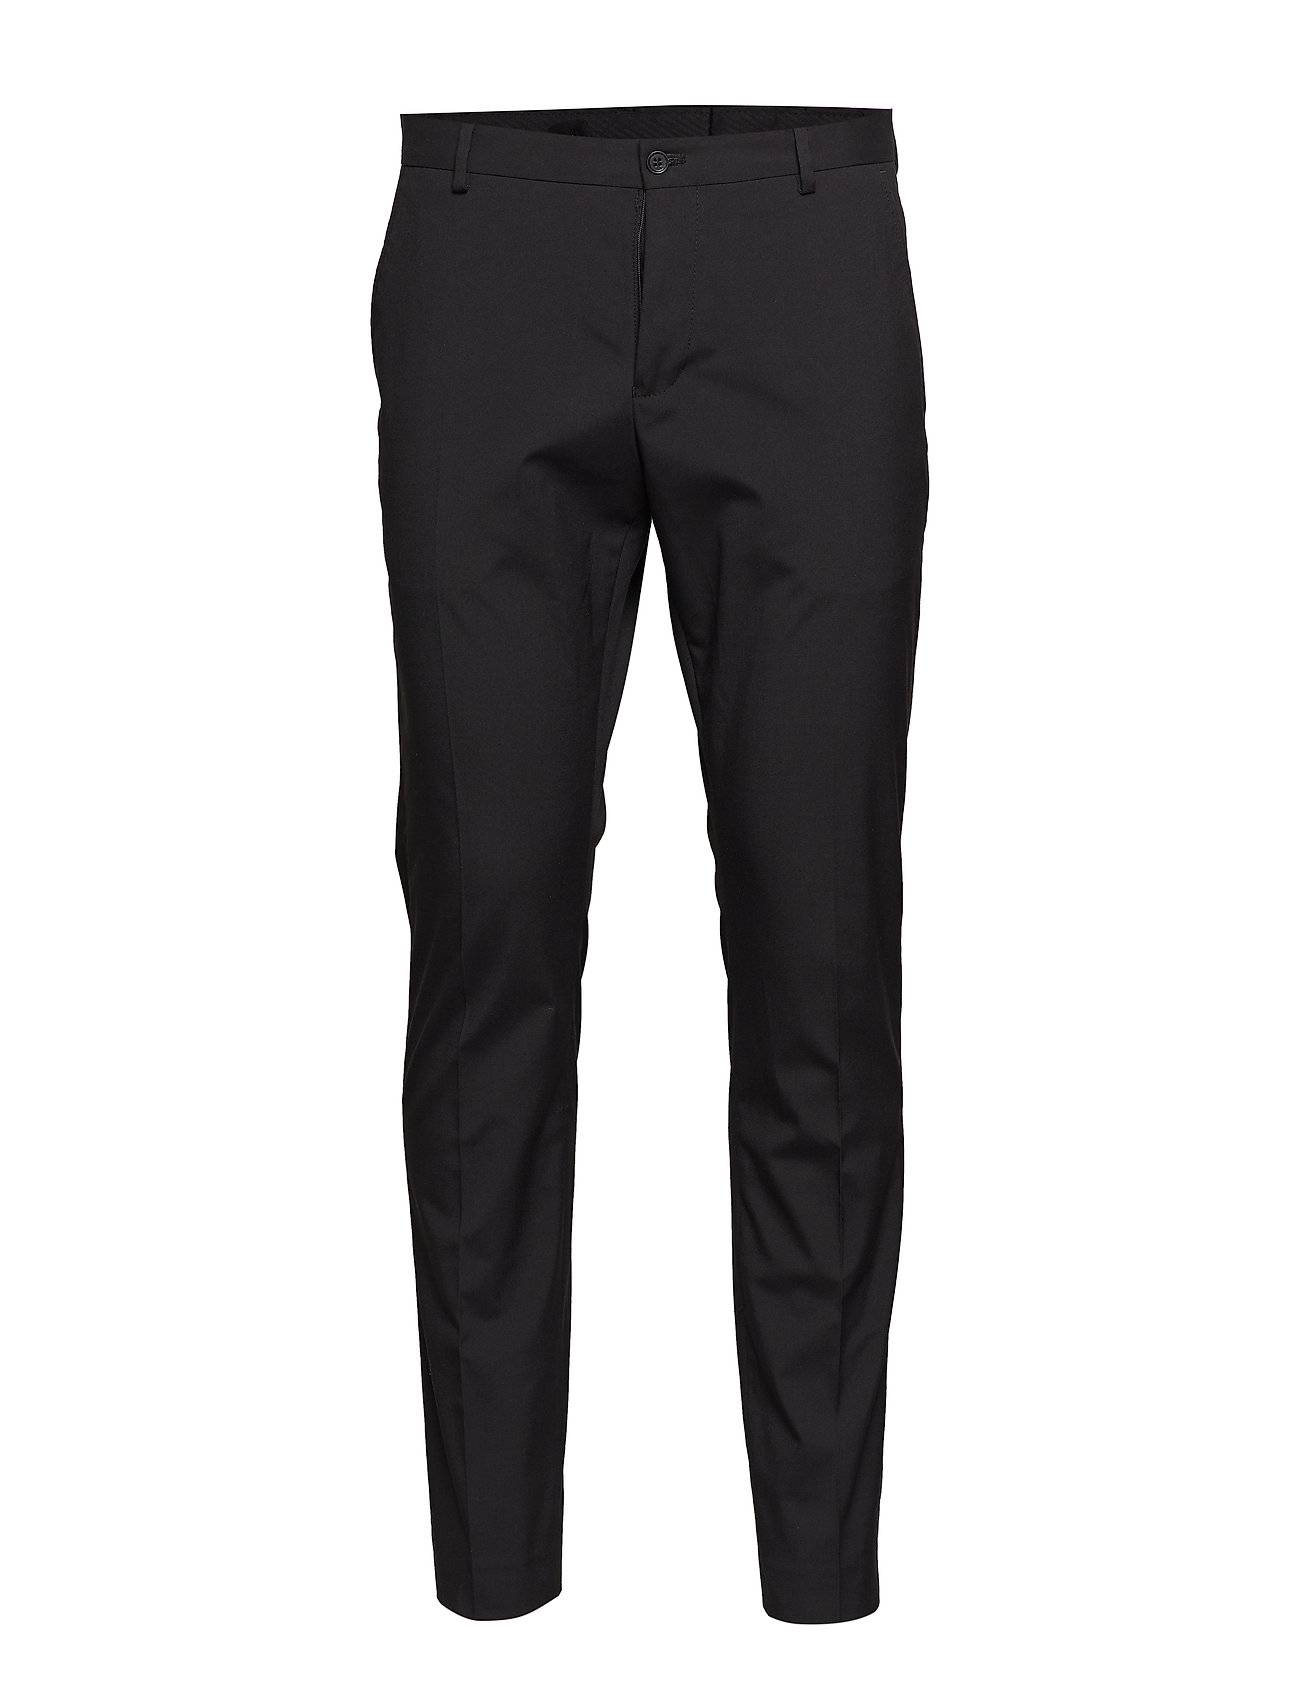 Selected Homme Slhslim-Mylologan Black Trouser B Noos Puvun Housut Suorat Housut Musta Selected Homme